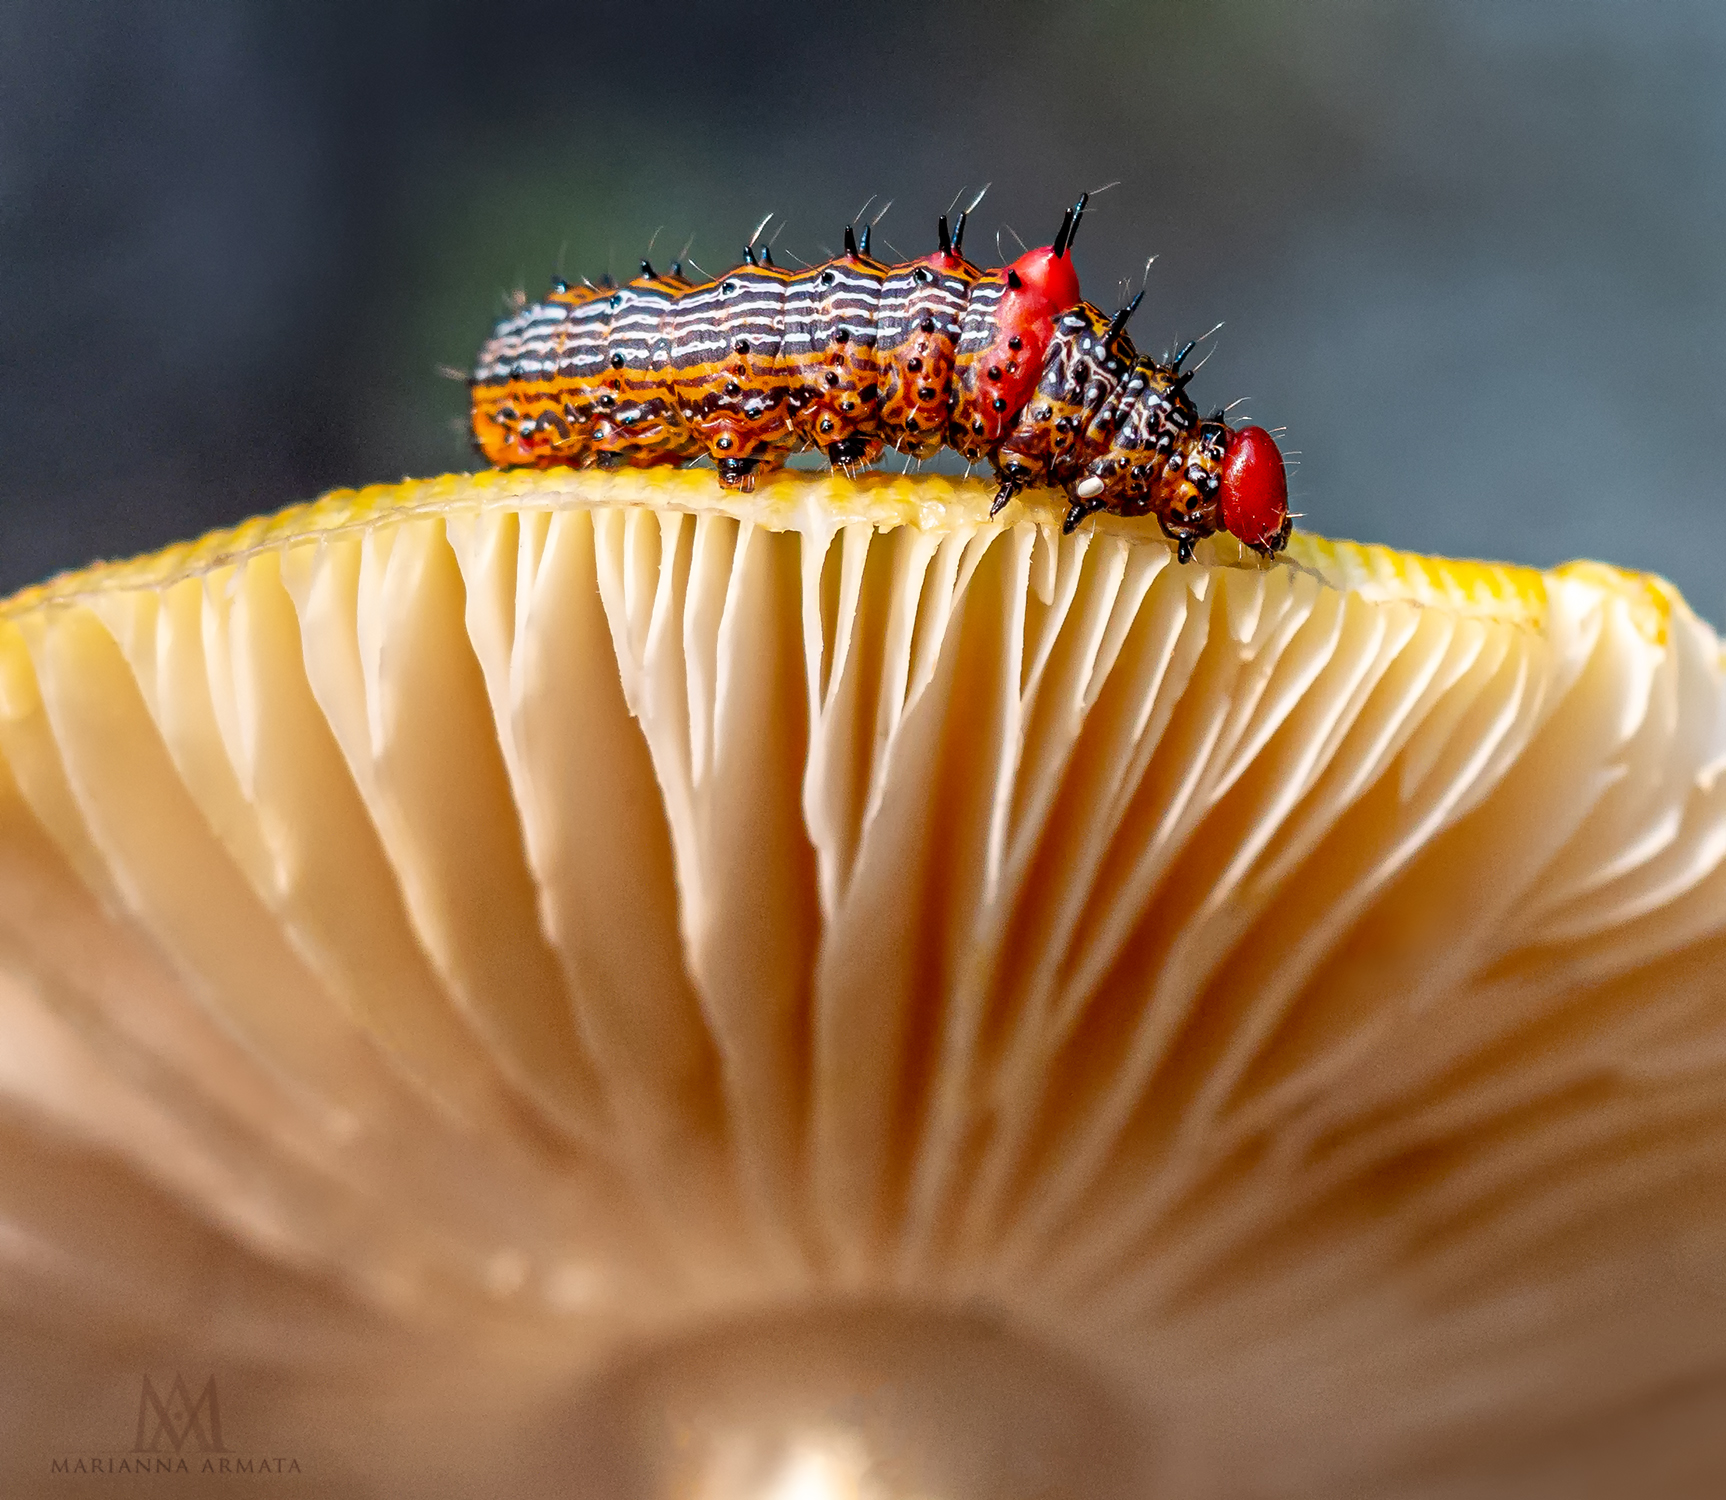 red-humped caterpillar on a toadstool